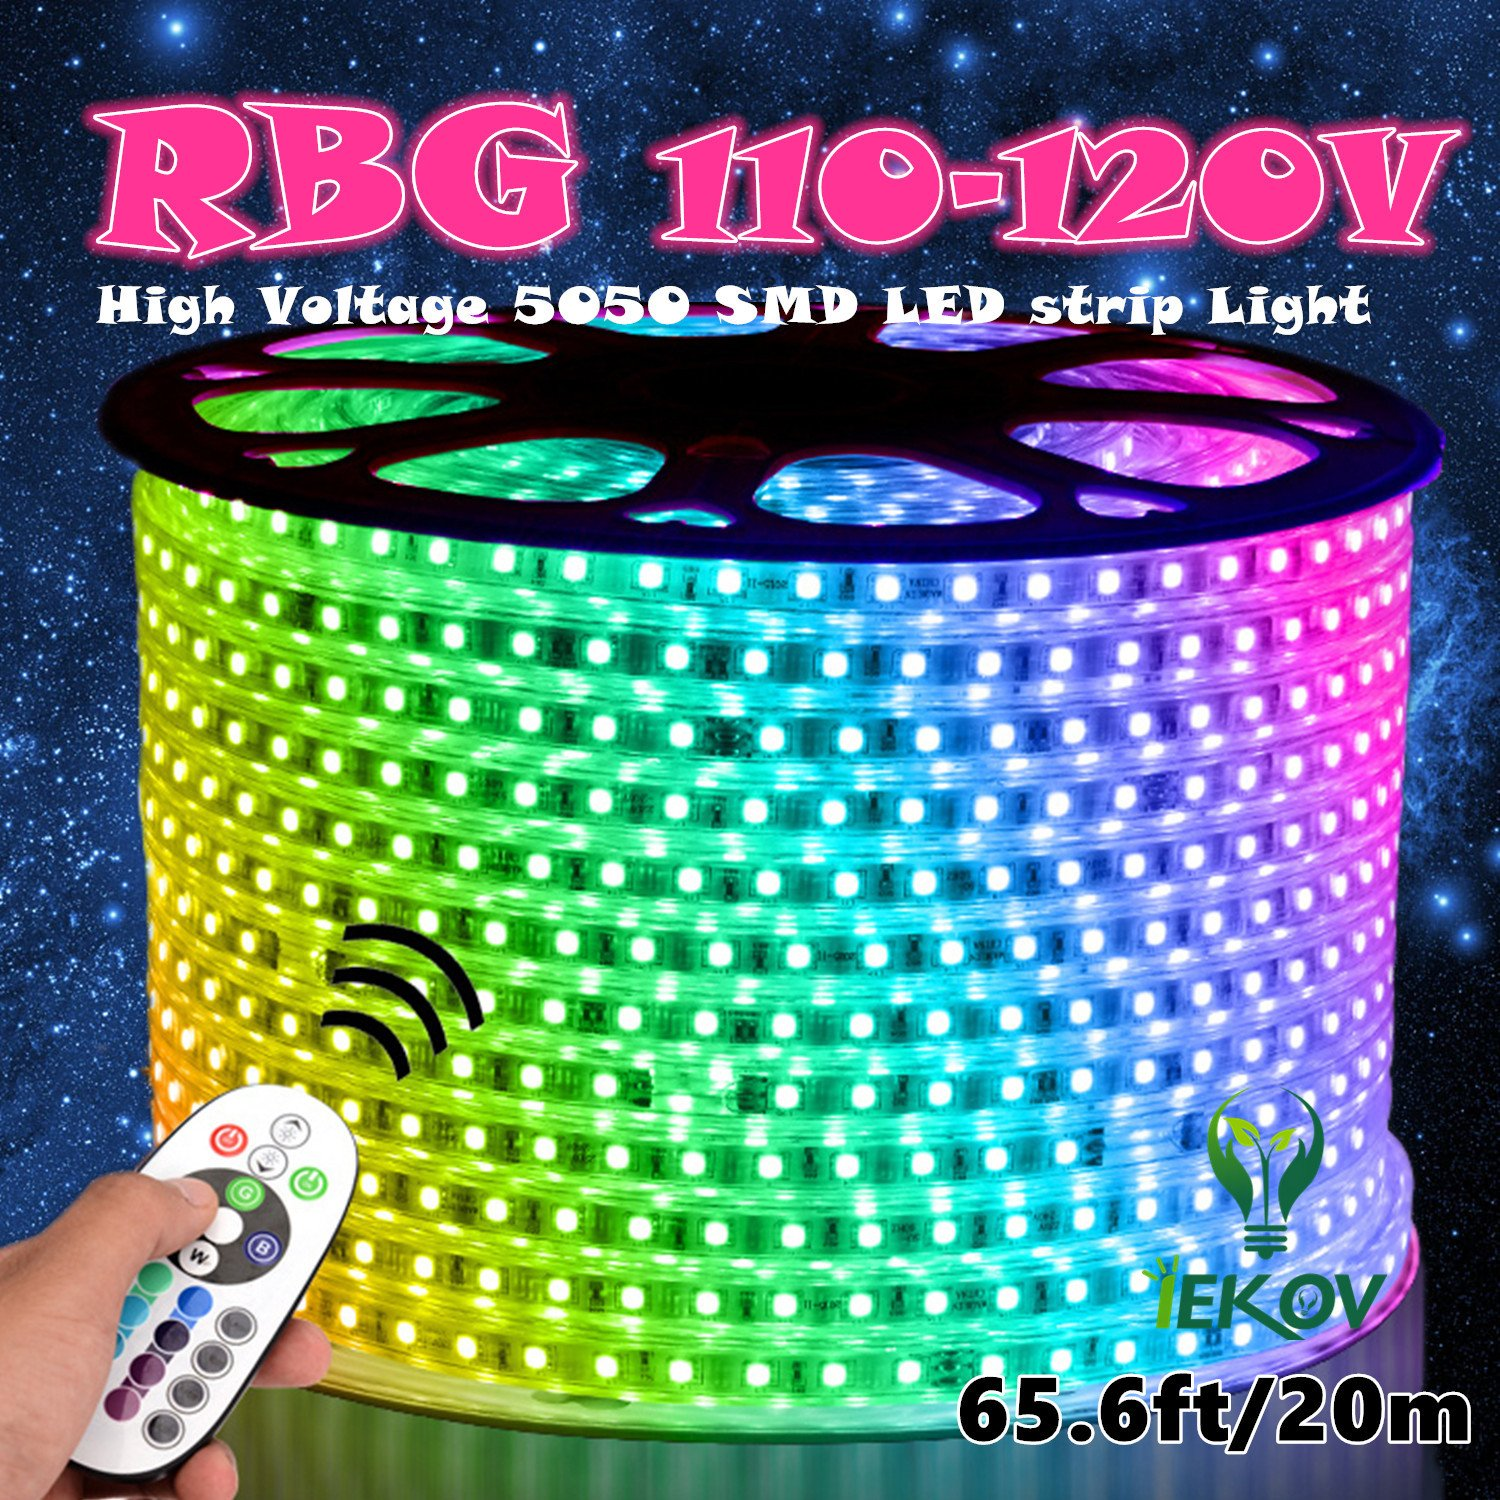 IEKOV™ AC 110-120V Flexible RGB LED Strip Lights, 60 LEDs/M, Waterproof, Multi Color Changing 5050 SMD LED Rope Light + Remote Controller for Party Christmas Decoration (65.6ft/20m)